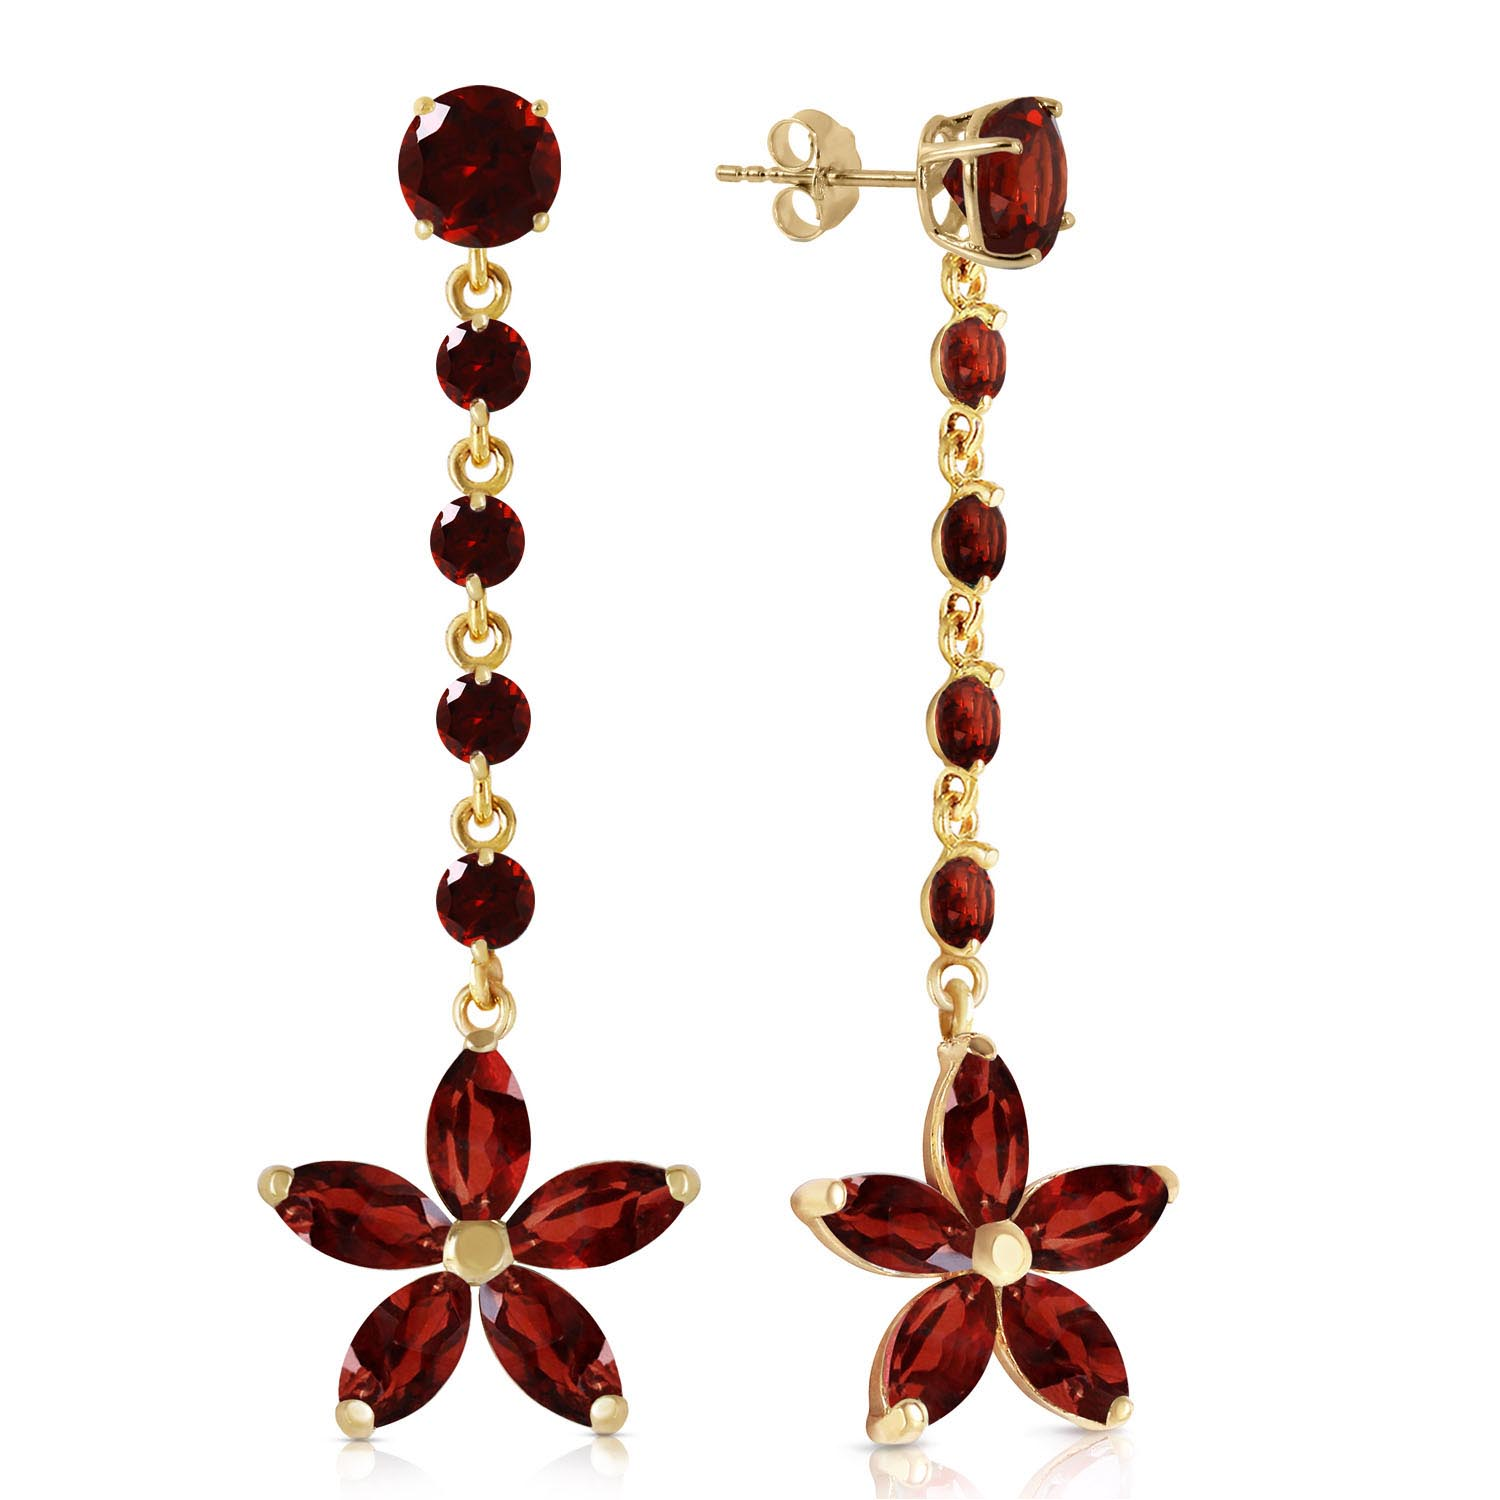 Garnet Daisy Chain Drop Earrings 4.8ctw in 9ct Gold